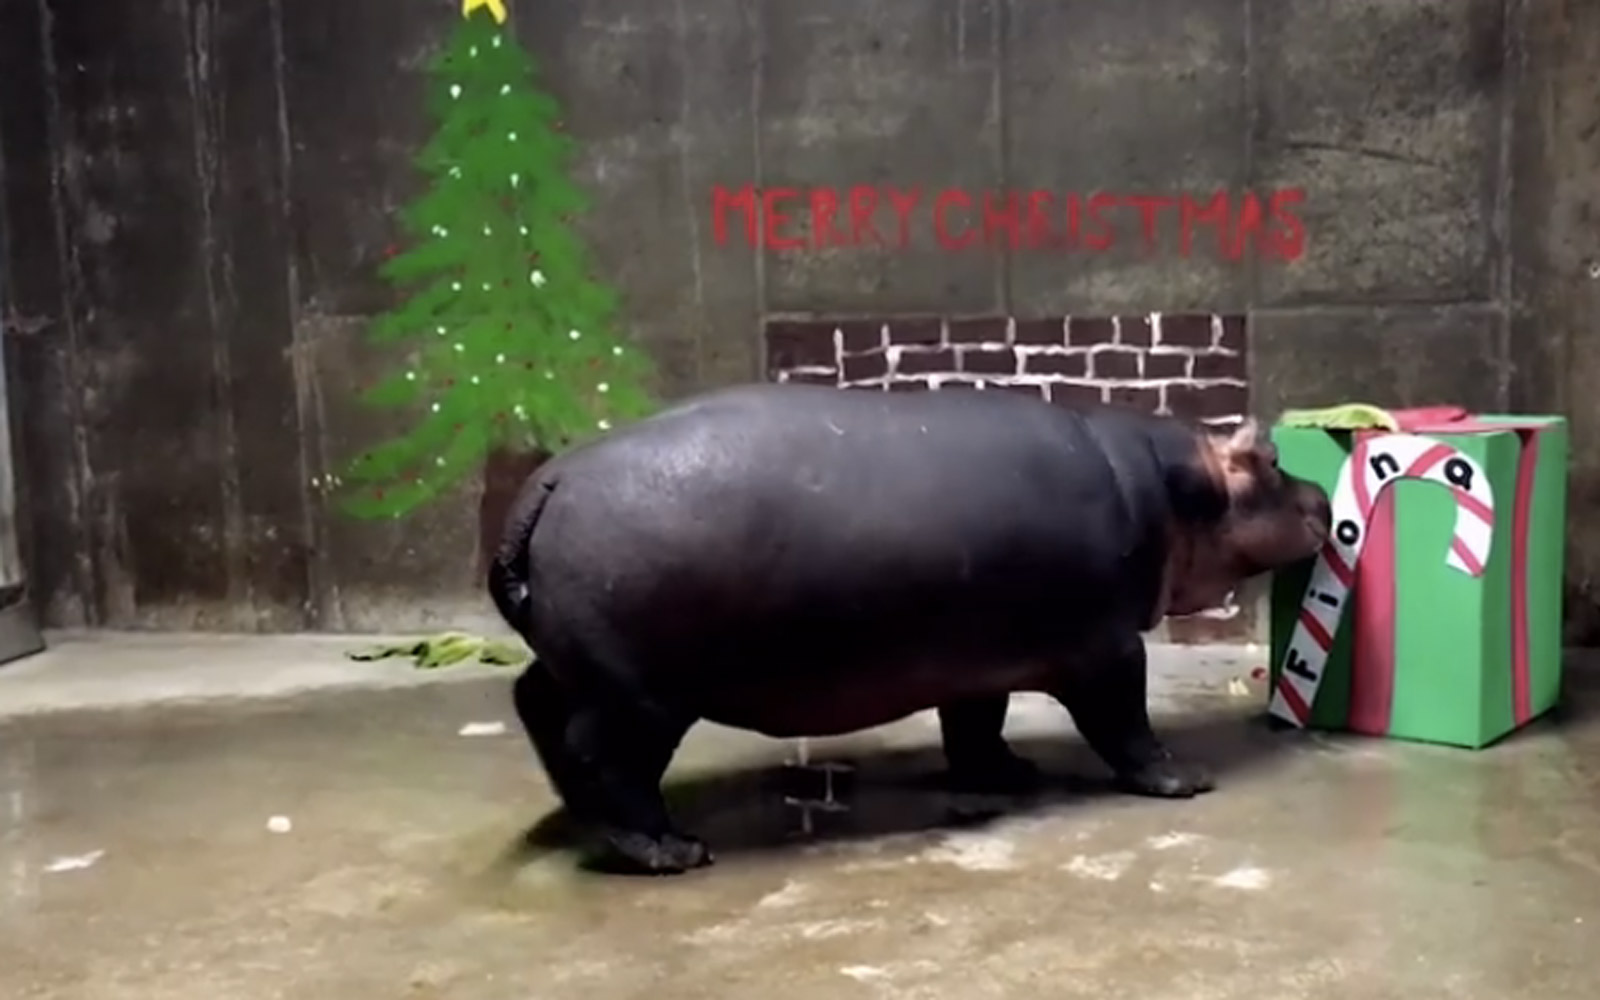 Fiona the Hippo opening up her first Christmas present at the Cincinnati Zoo